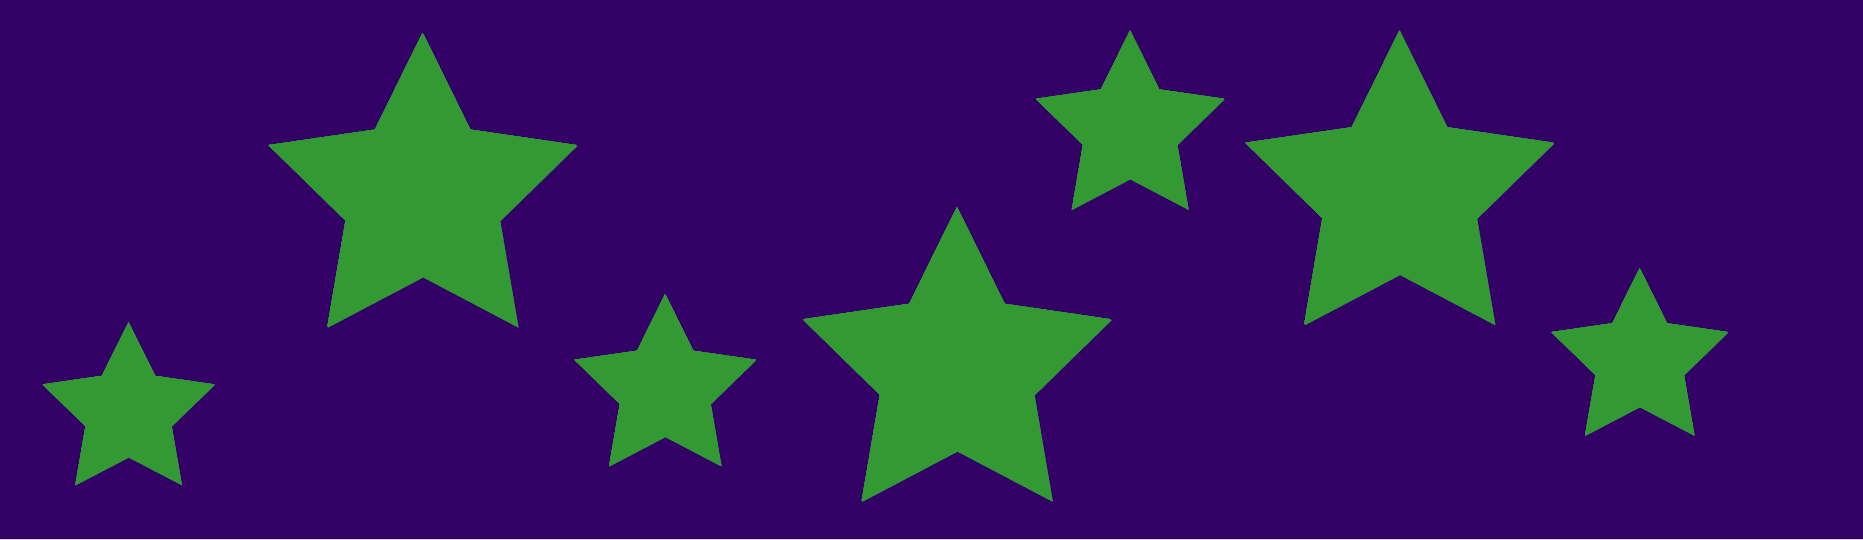 star_banner.png